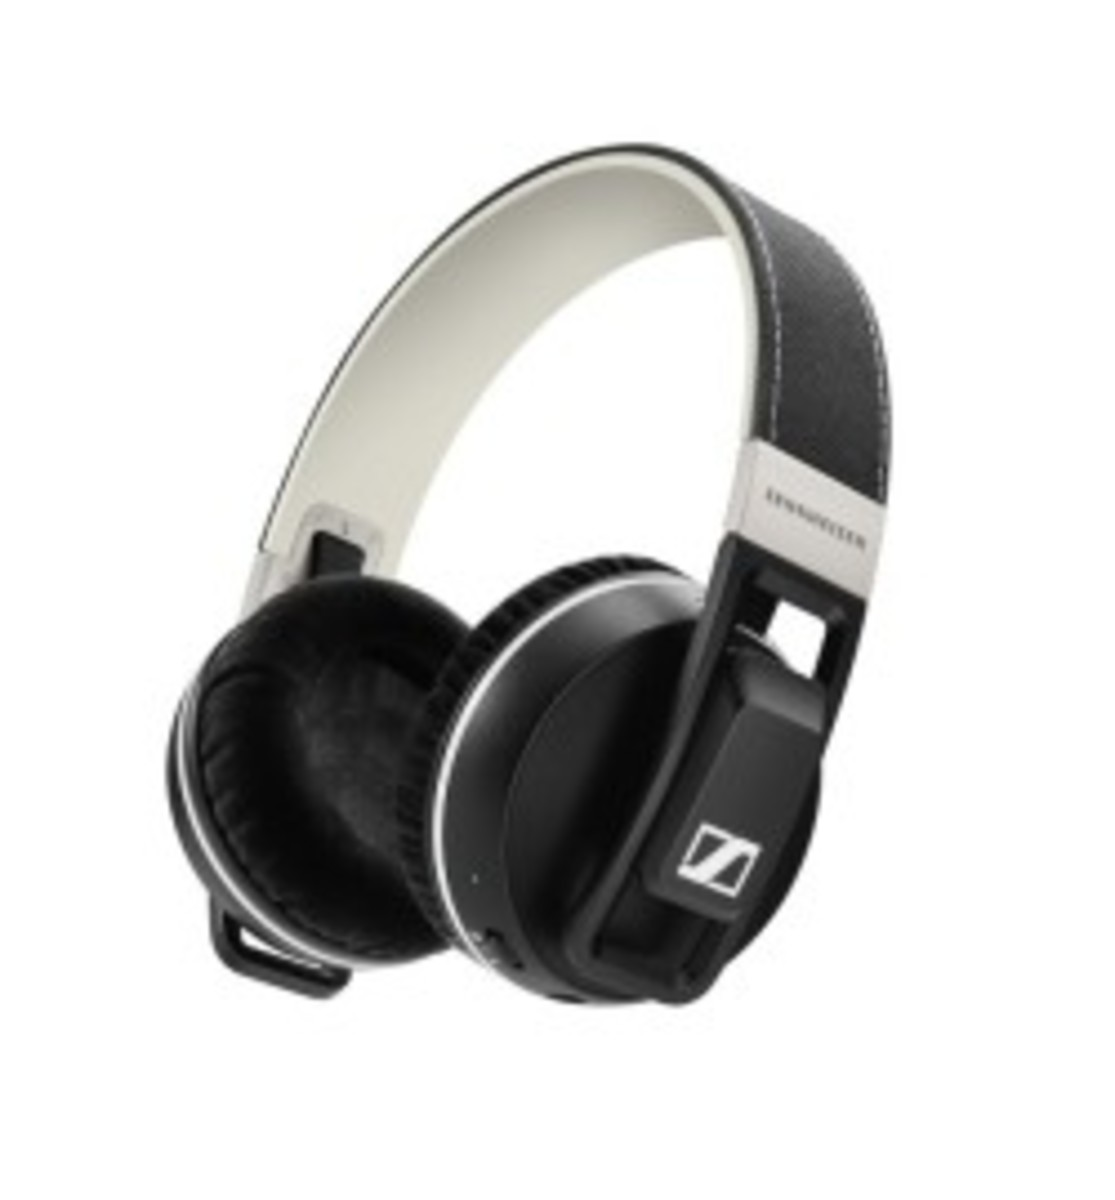 Sennheiser Launches Touch Panel Headphones And More At CES